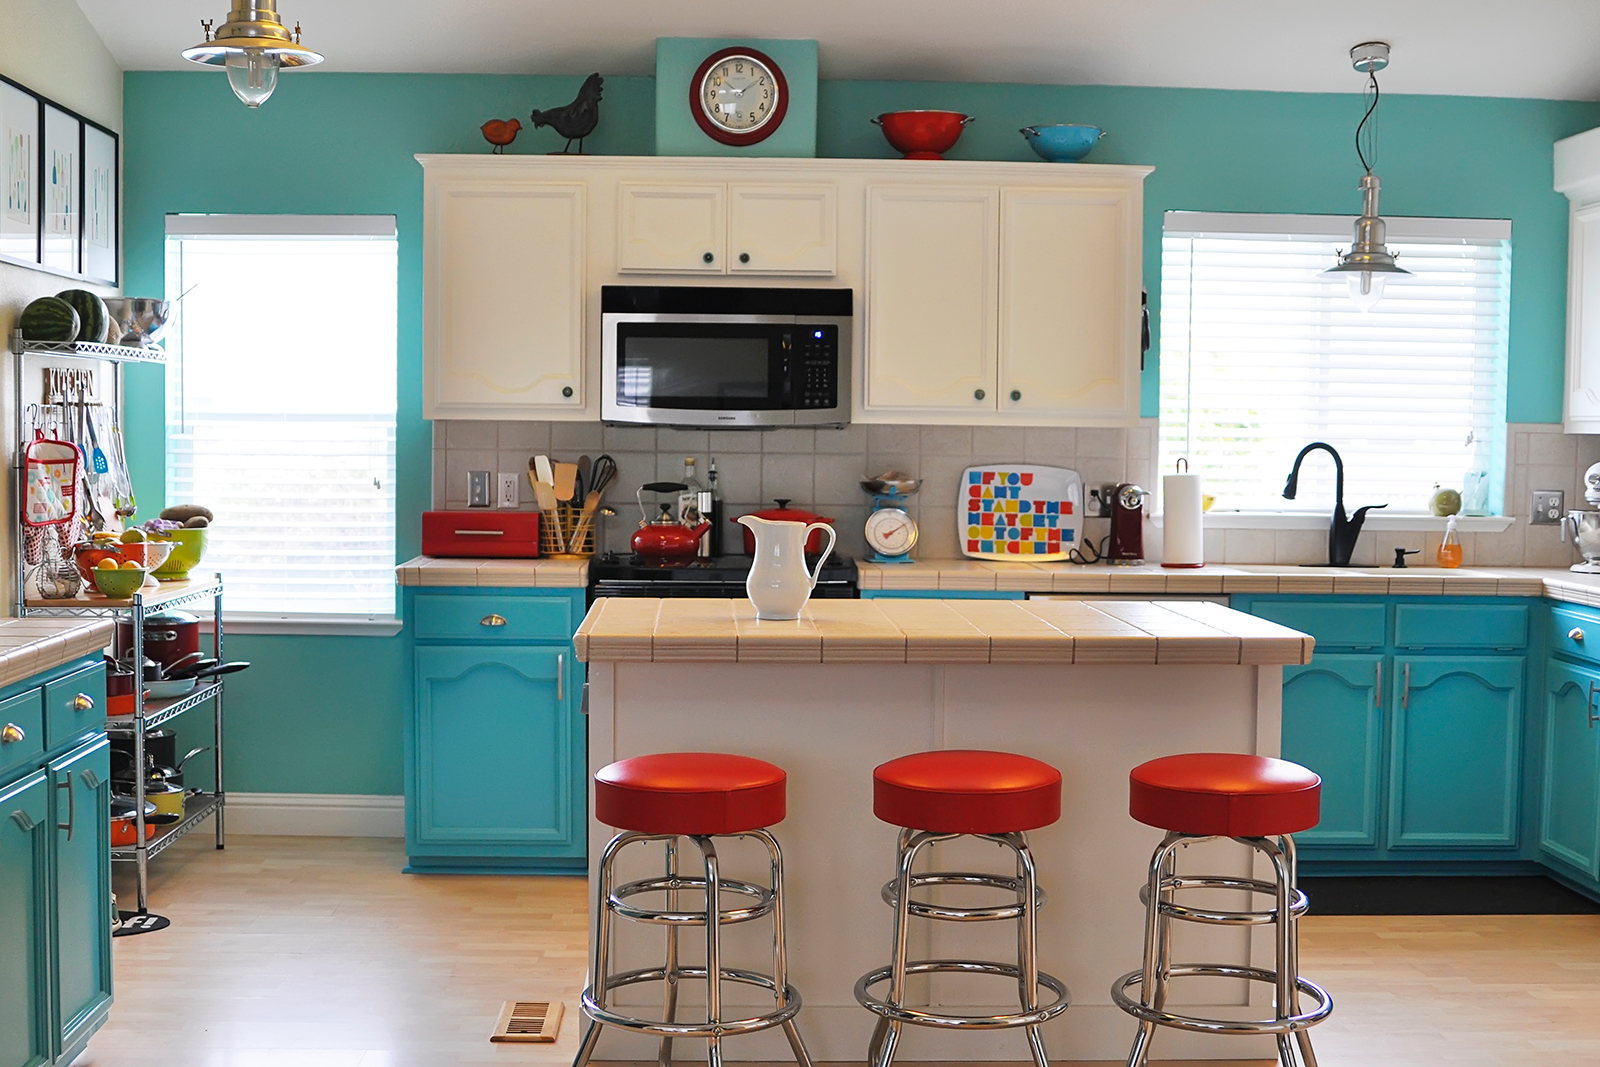 tips for kitchen remodeling remodeled kitchens images Kitchen Remodeling Decisions You ll Never Regret